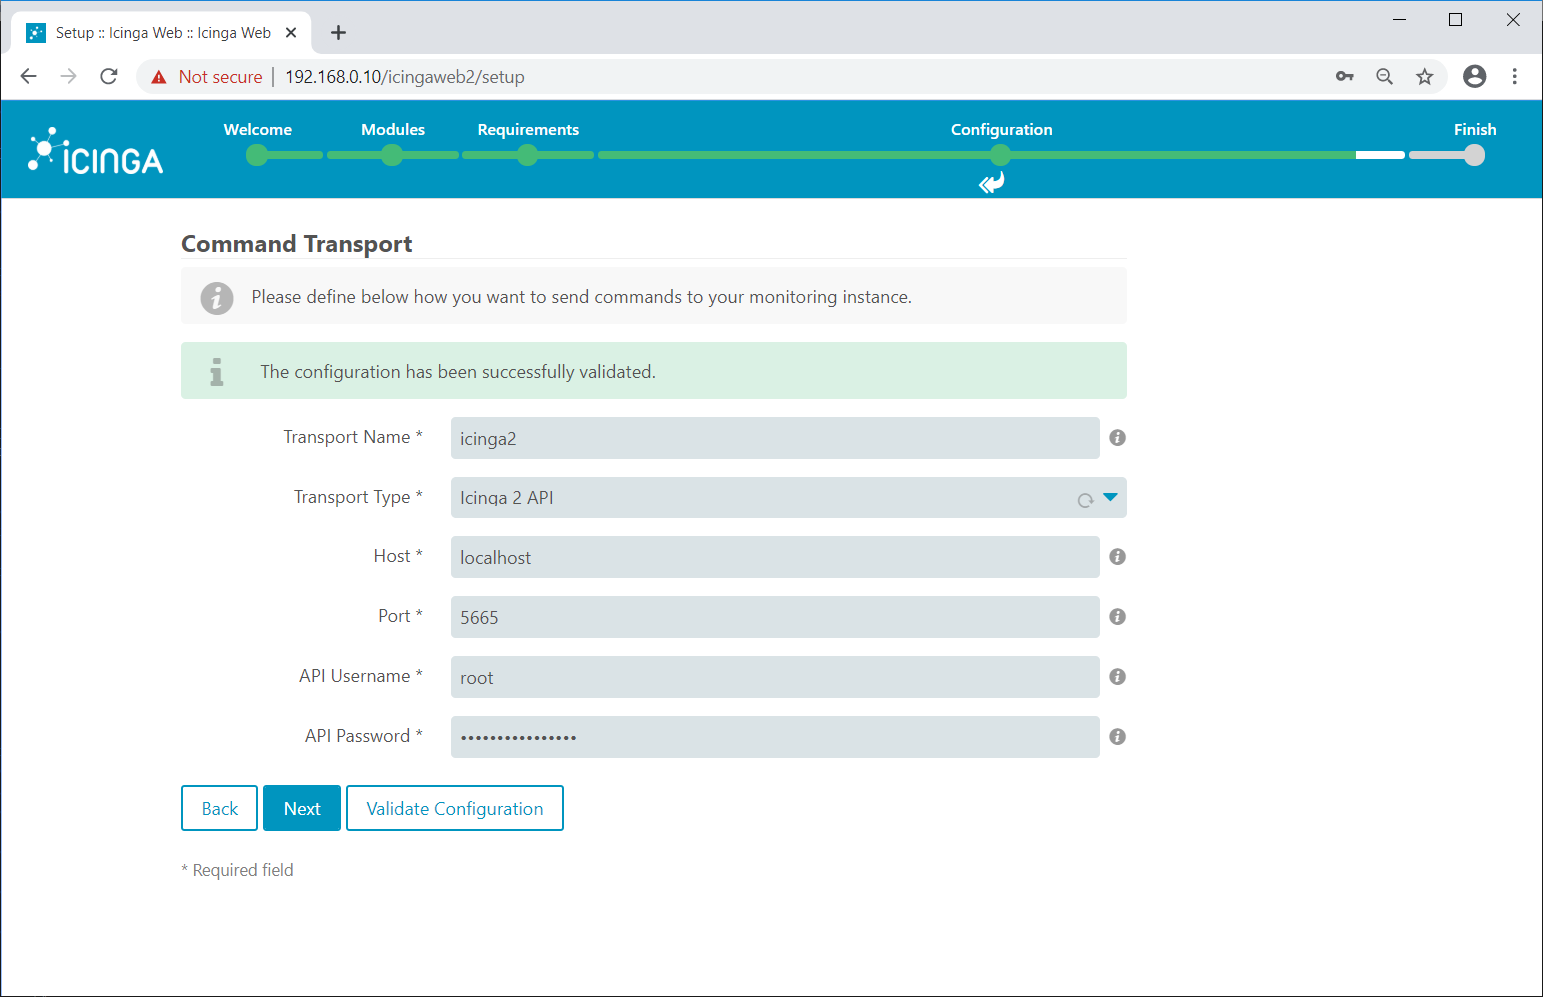 Icinga 2 API Command Transport